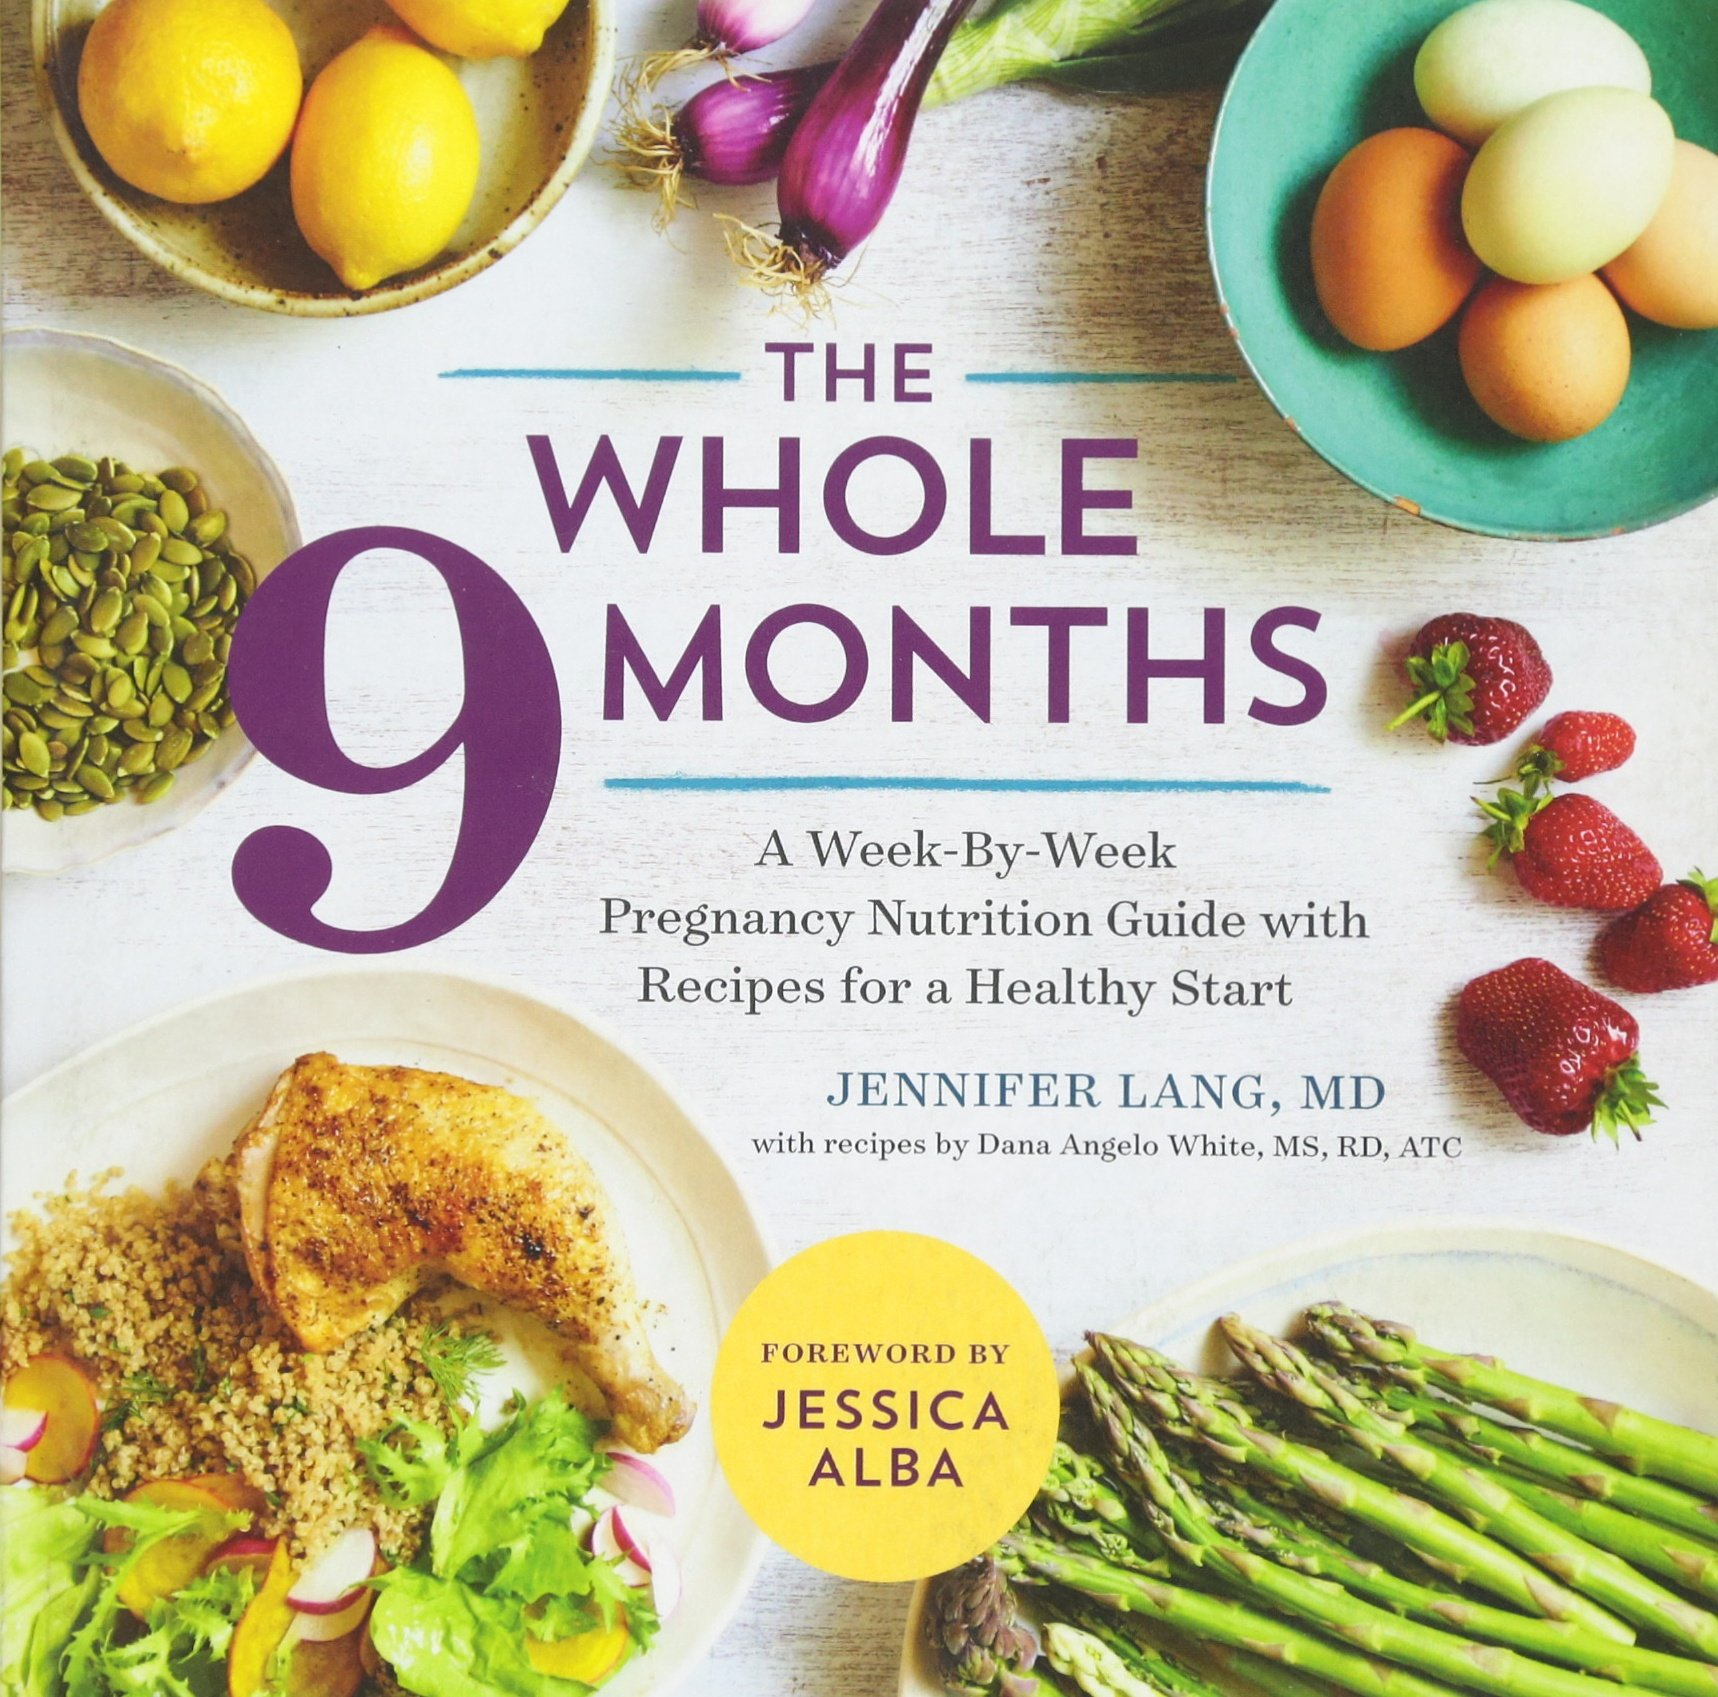 The whole 9 months a week by week pregnancy nutrition guide with the whole 9 months a week by week pregnancy nutrition guide with recipes for a healthy start jennifer lang md dana angelo white ms rd jessica alba forumfinder Images